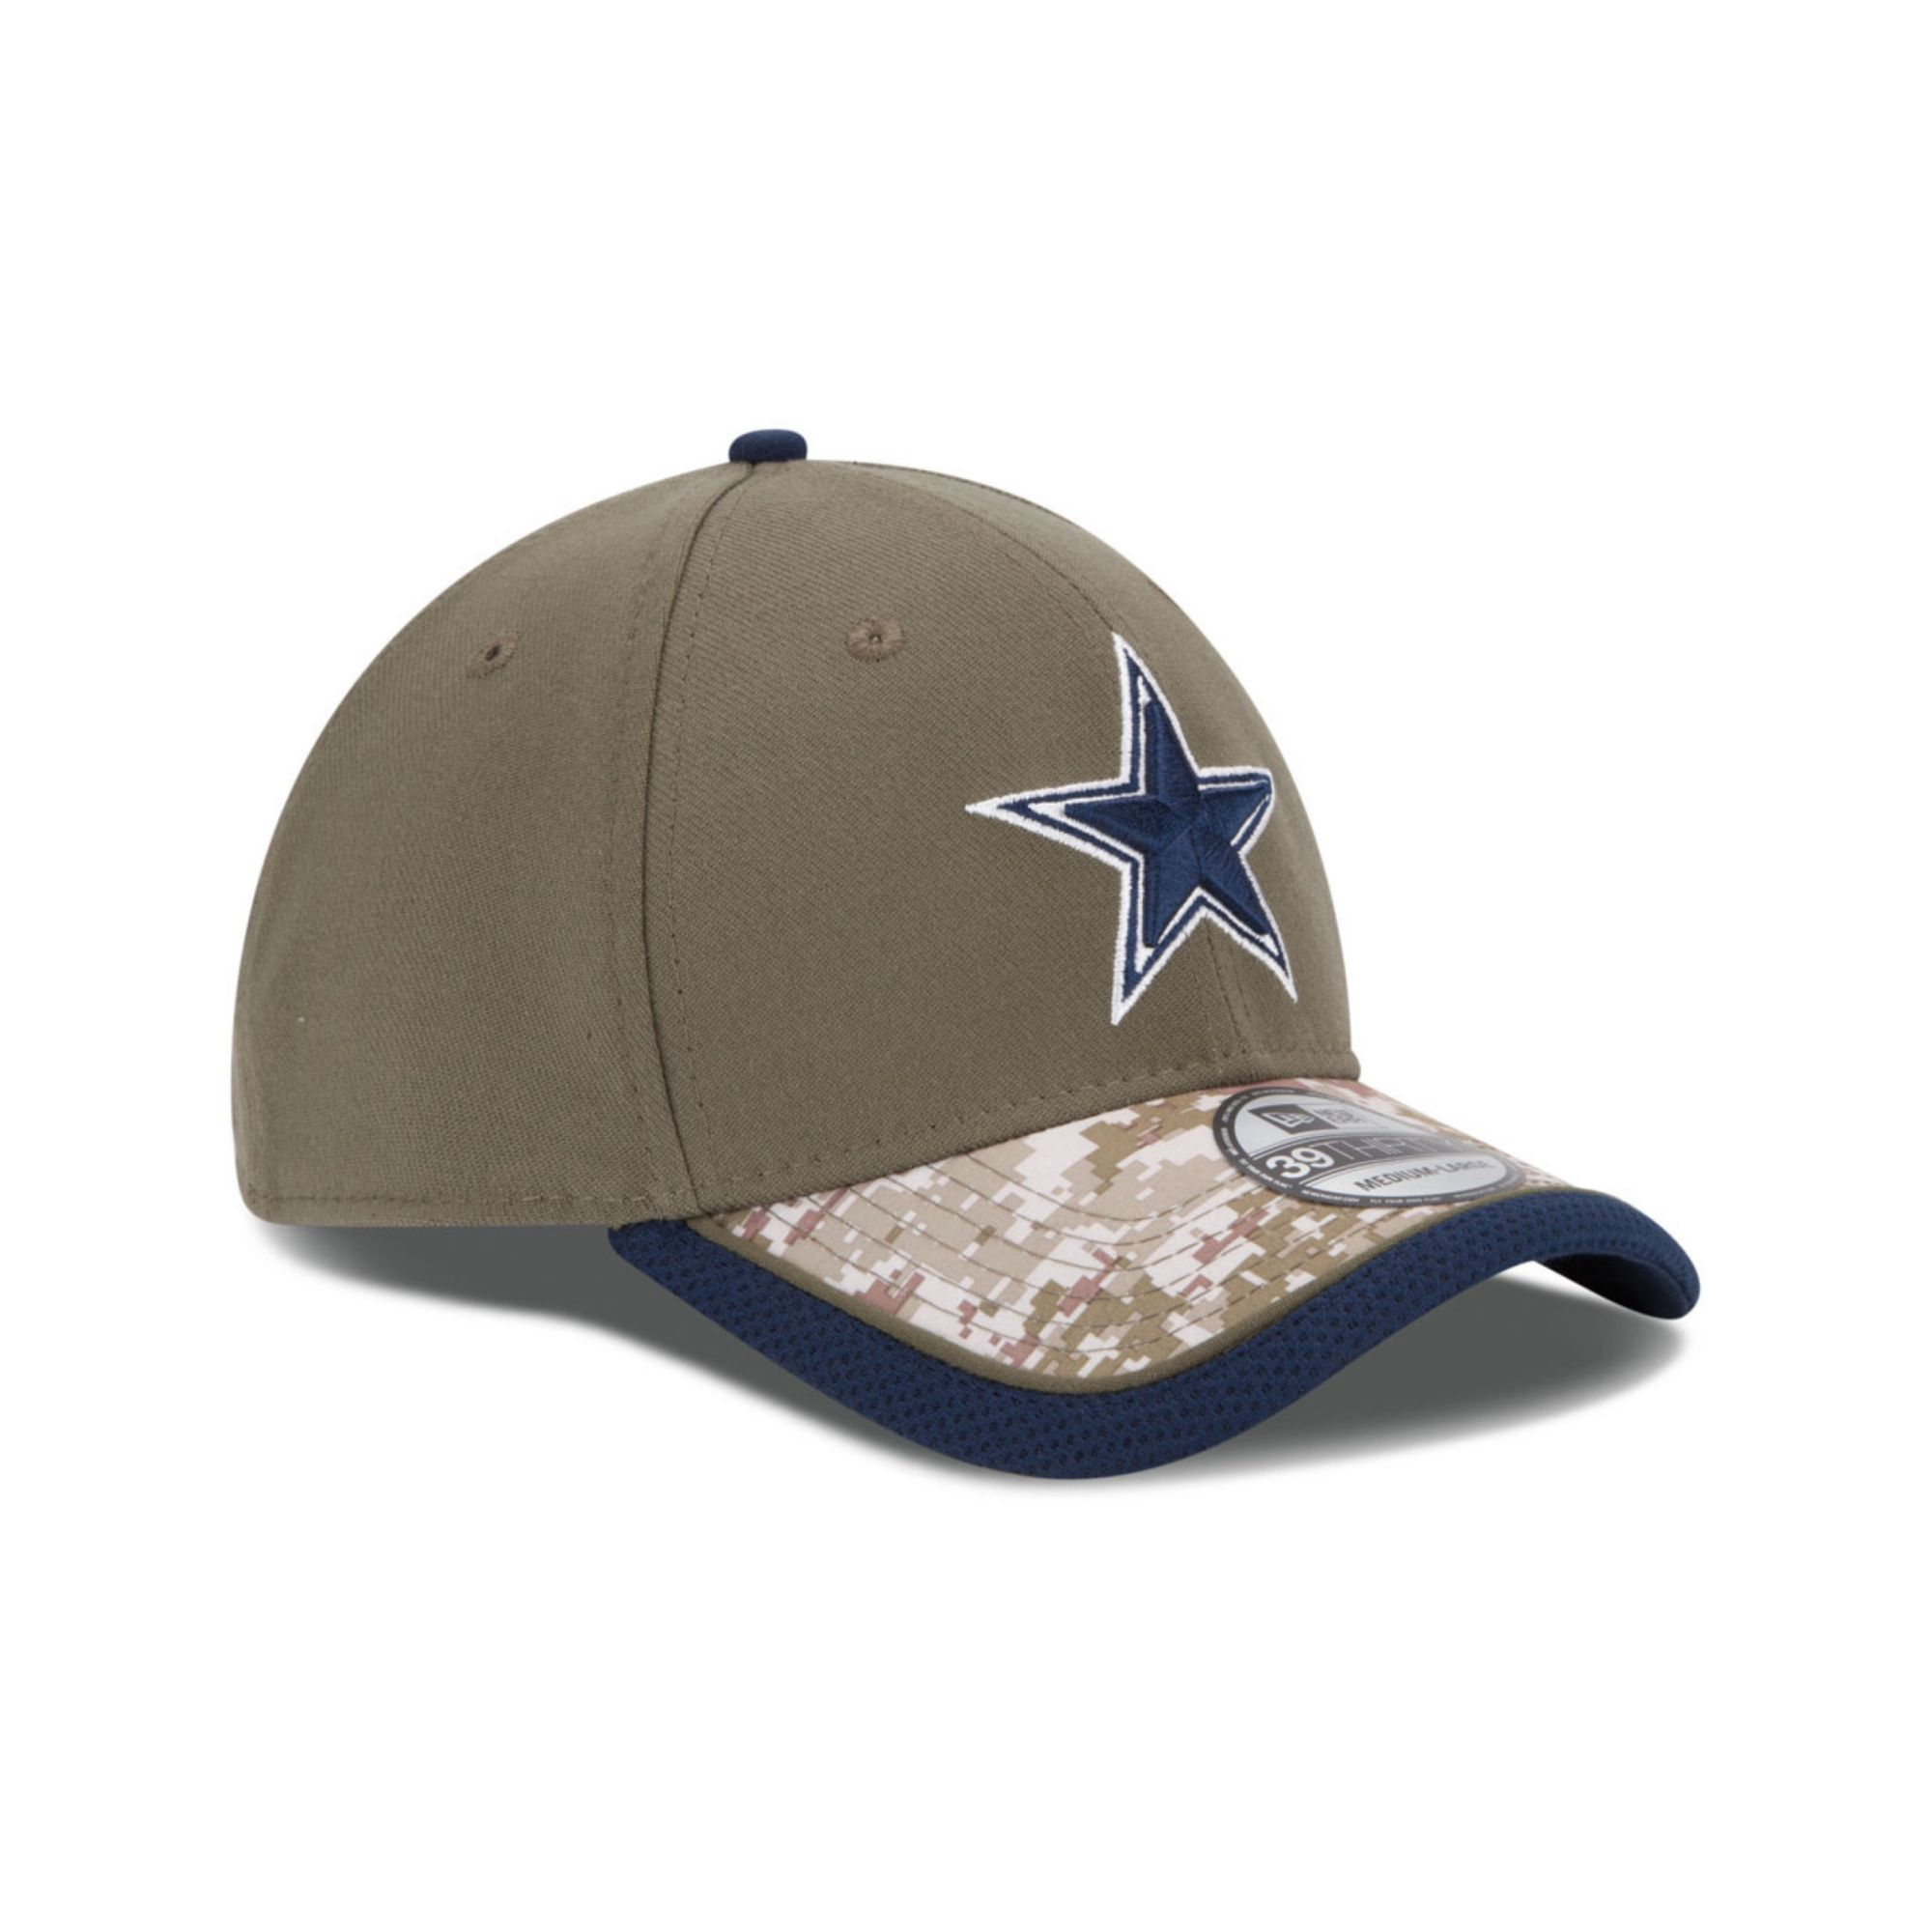 Lyst - KTZ Dallas Cowboys Salute To Service 39thirty Cap in Green ... 25adaf55f93